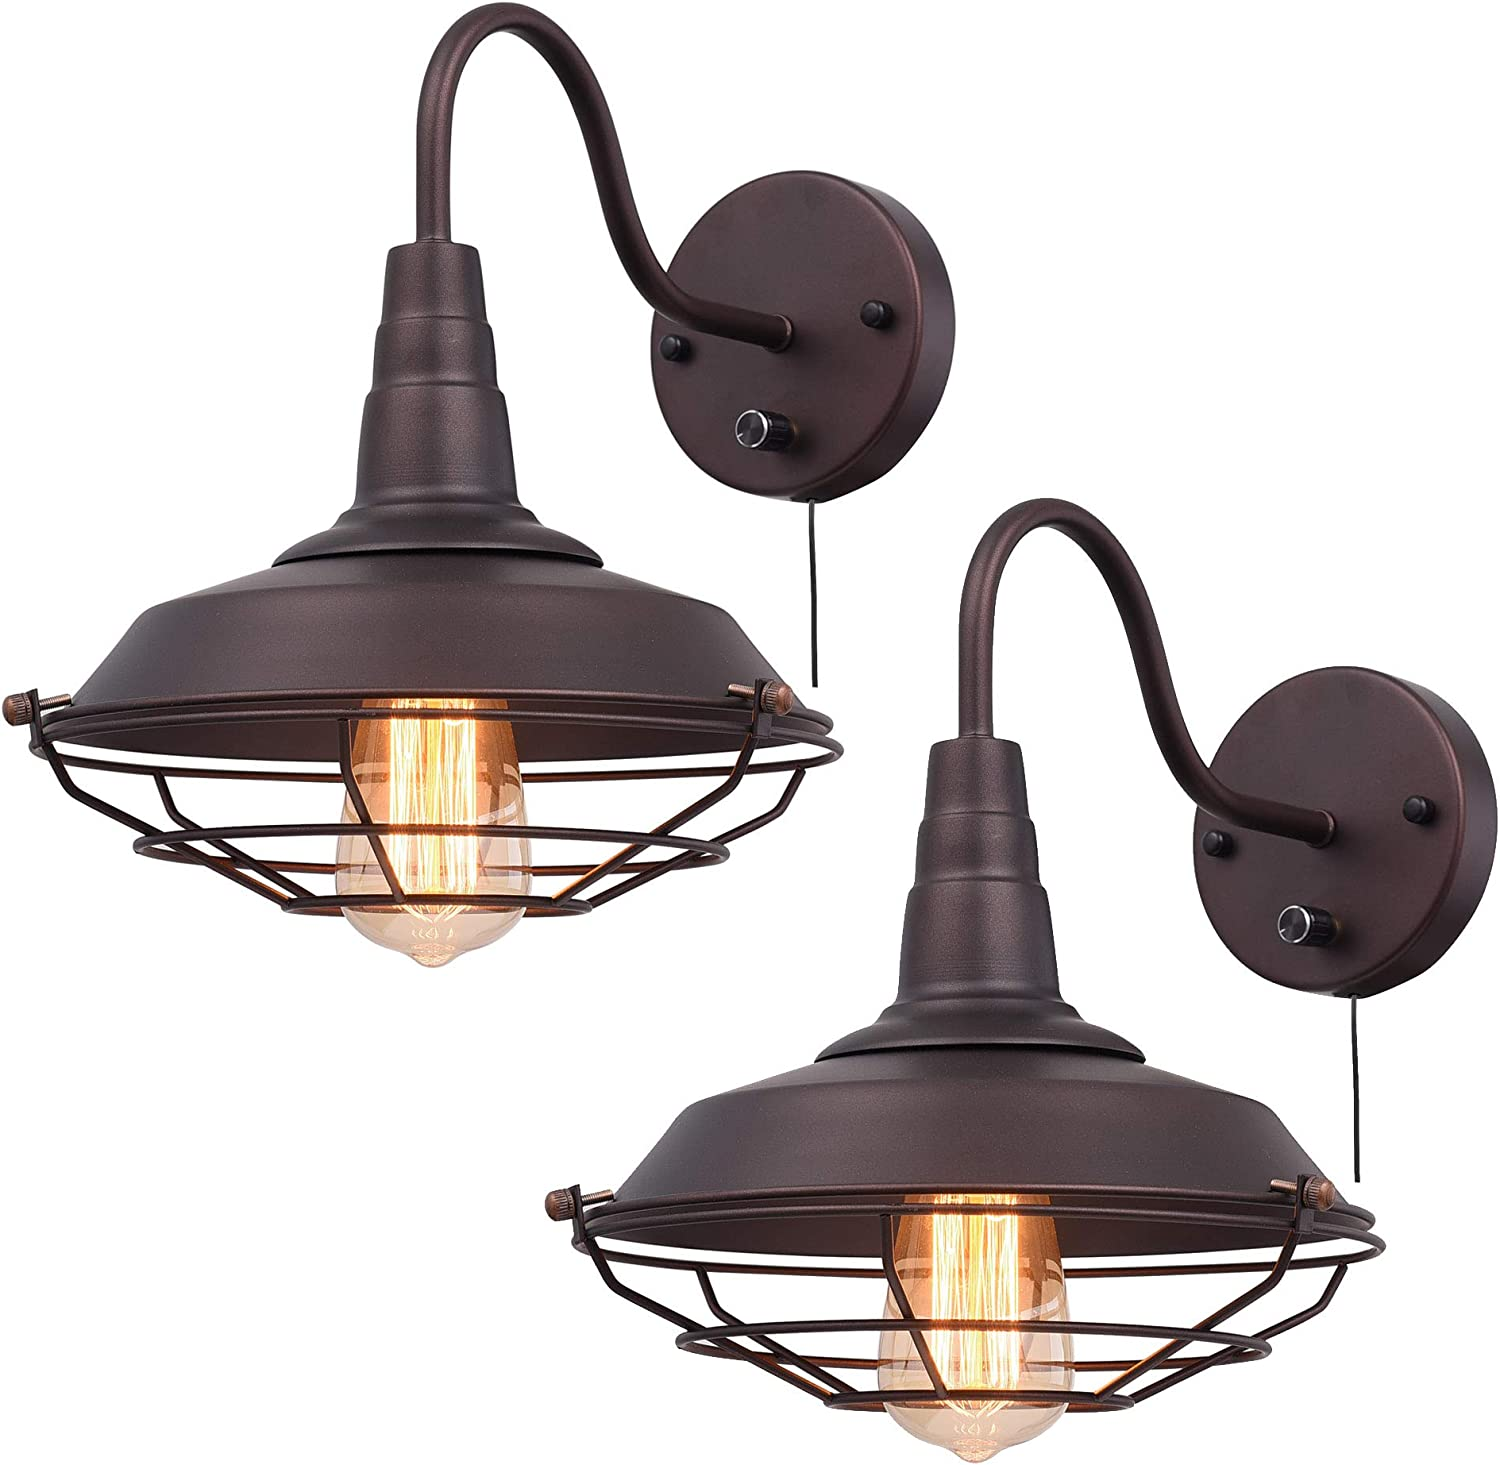 Ivalue Wall Lamps Set Of 2 Gooseneck Cage Barn Sconce Wall Lighting With Plug For Restaurant Kitchen